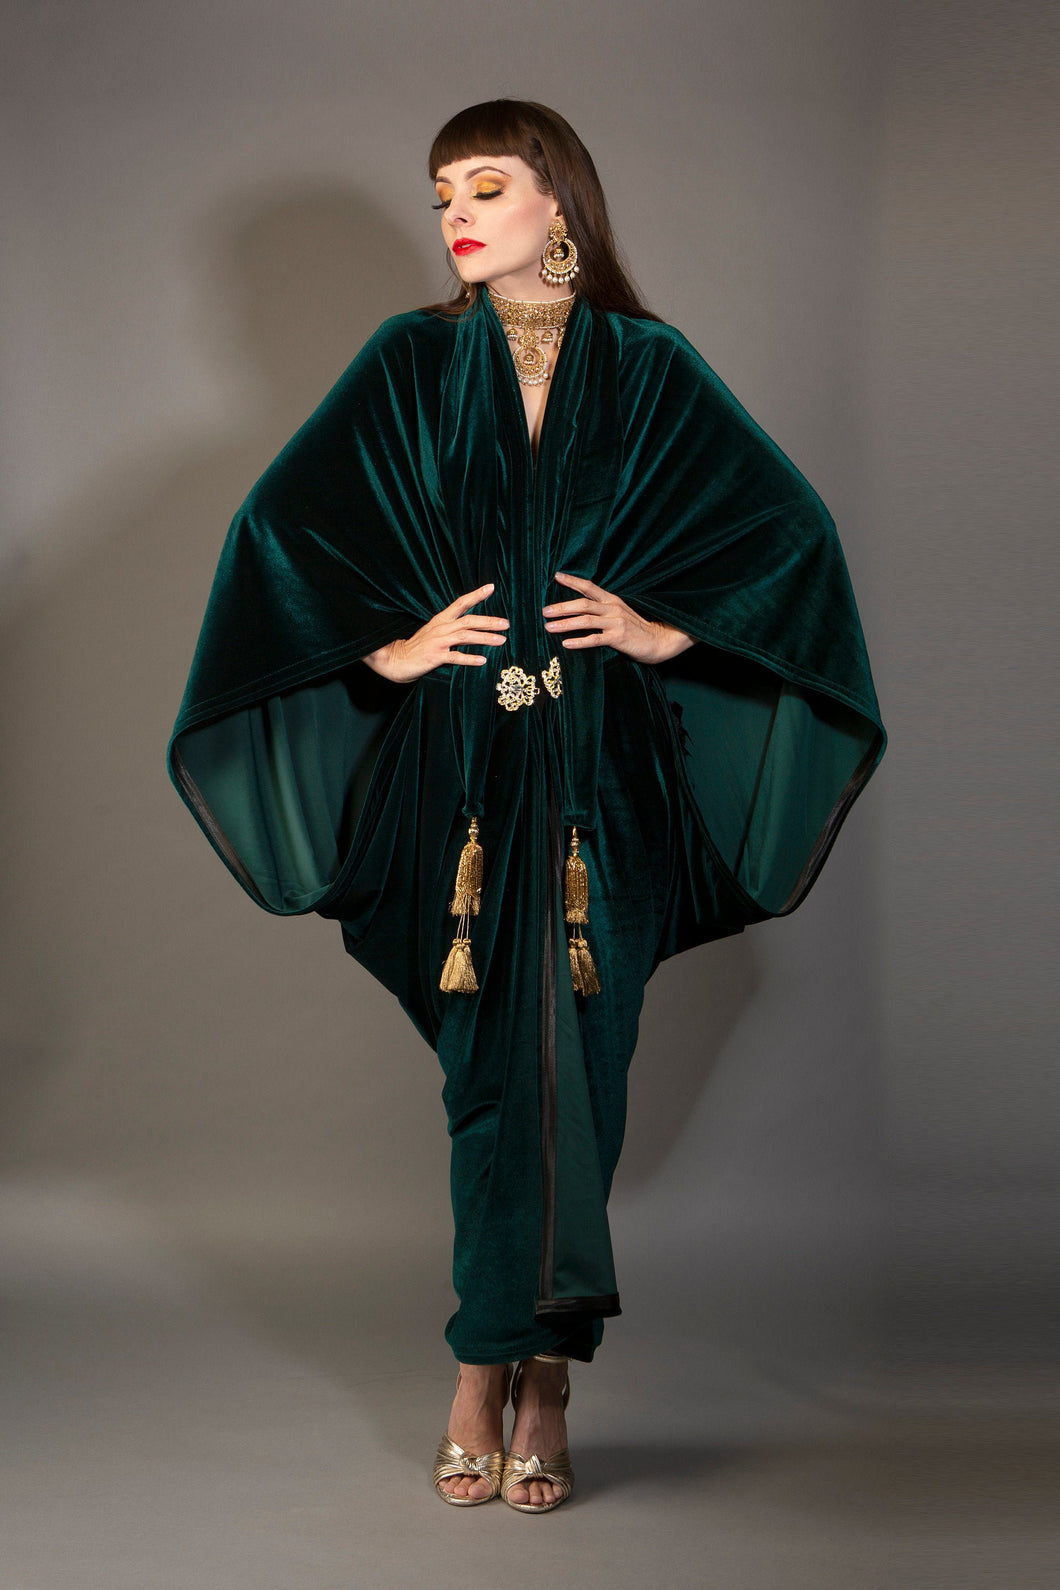 1920s Green Velvet Great Gatsby Dress - Floor length flapper Cocoon coat